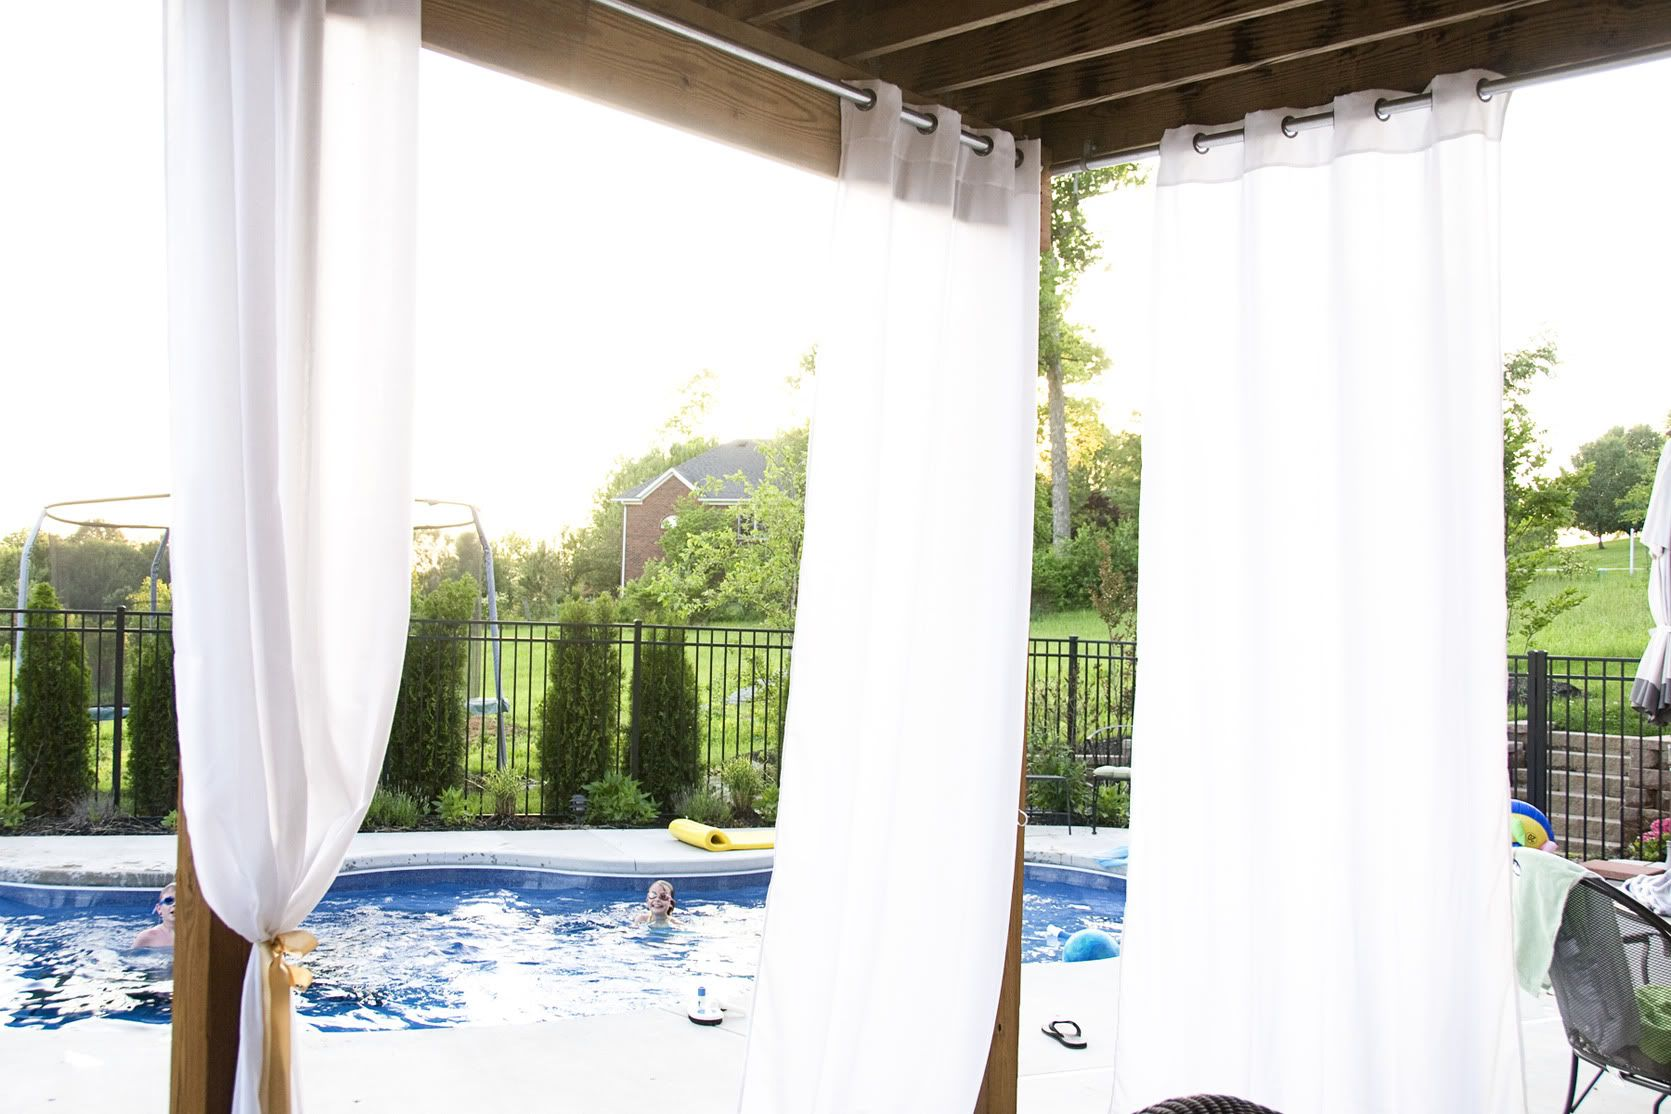 Hanging Outdoor Curtains - The Polkadot Chair